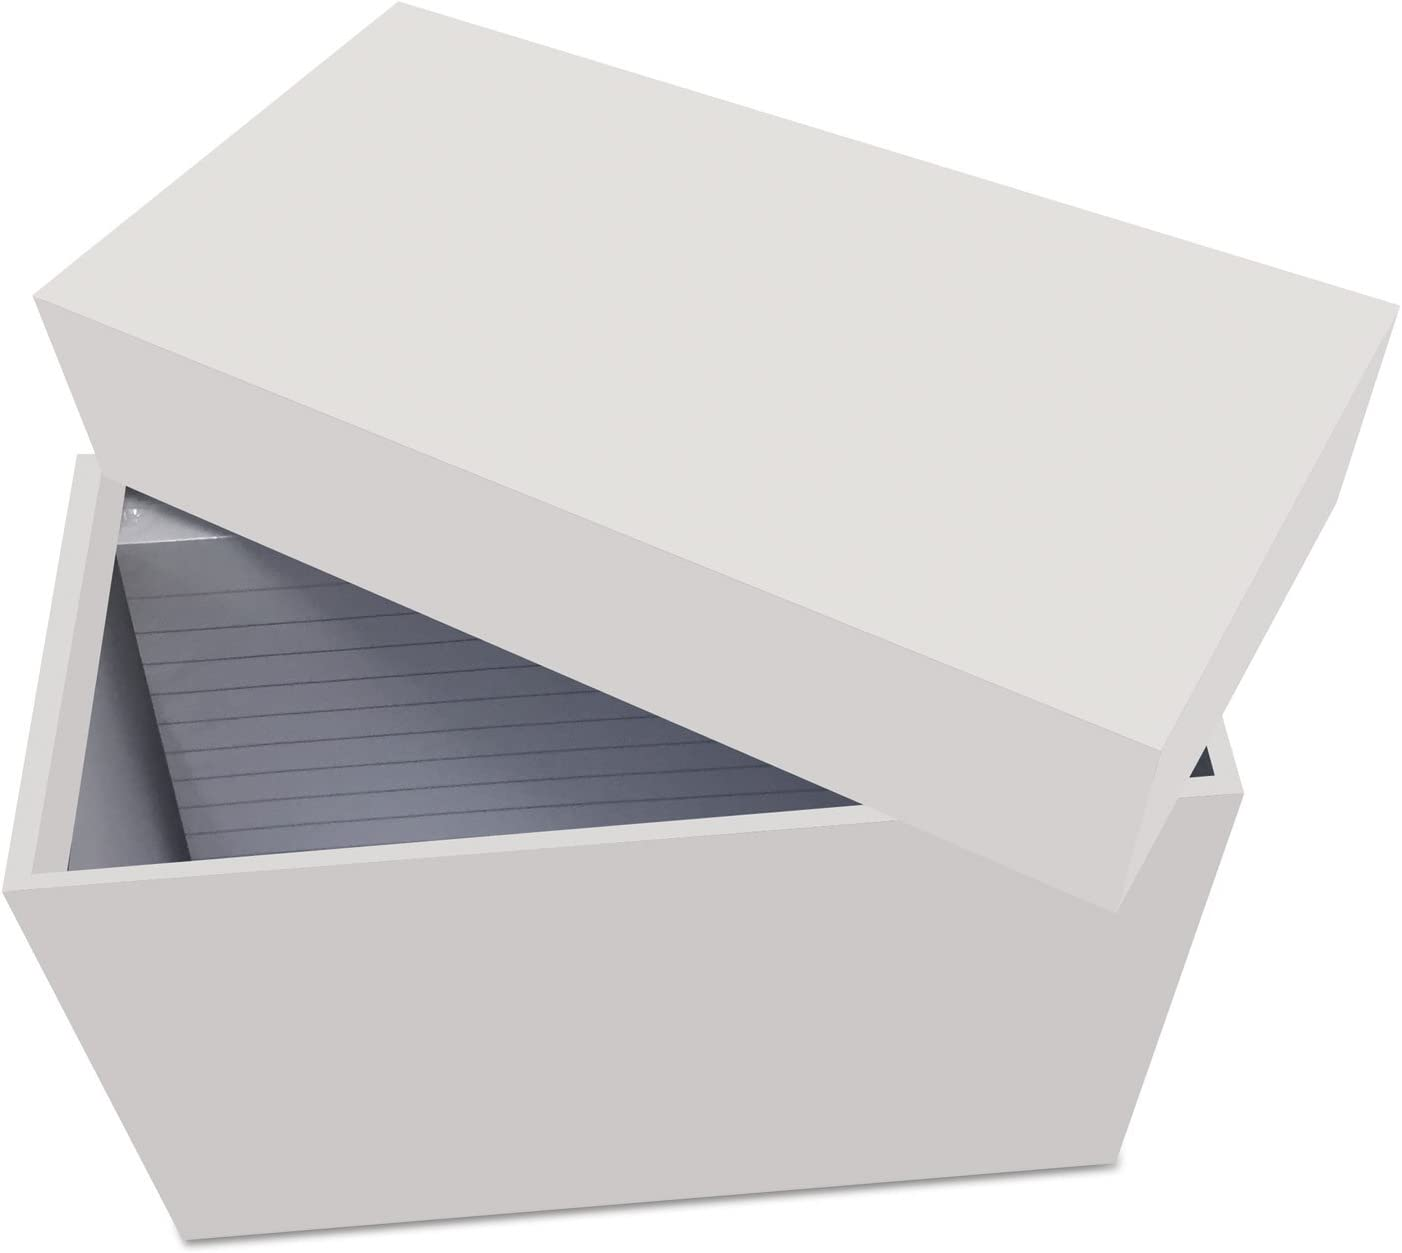 Universal 47281 Index Max 88% OFF Card Box with Cards Ruled Seattle Mall 4